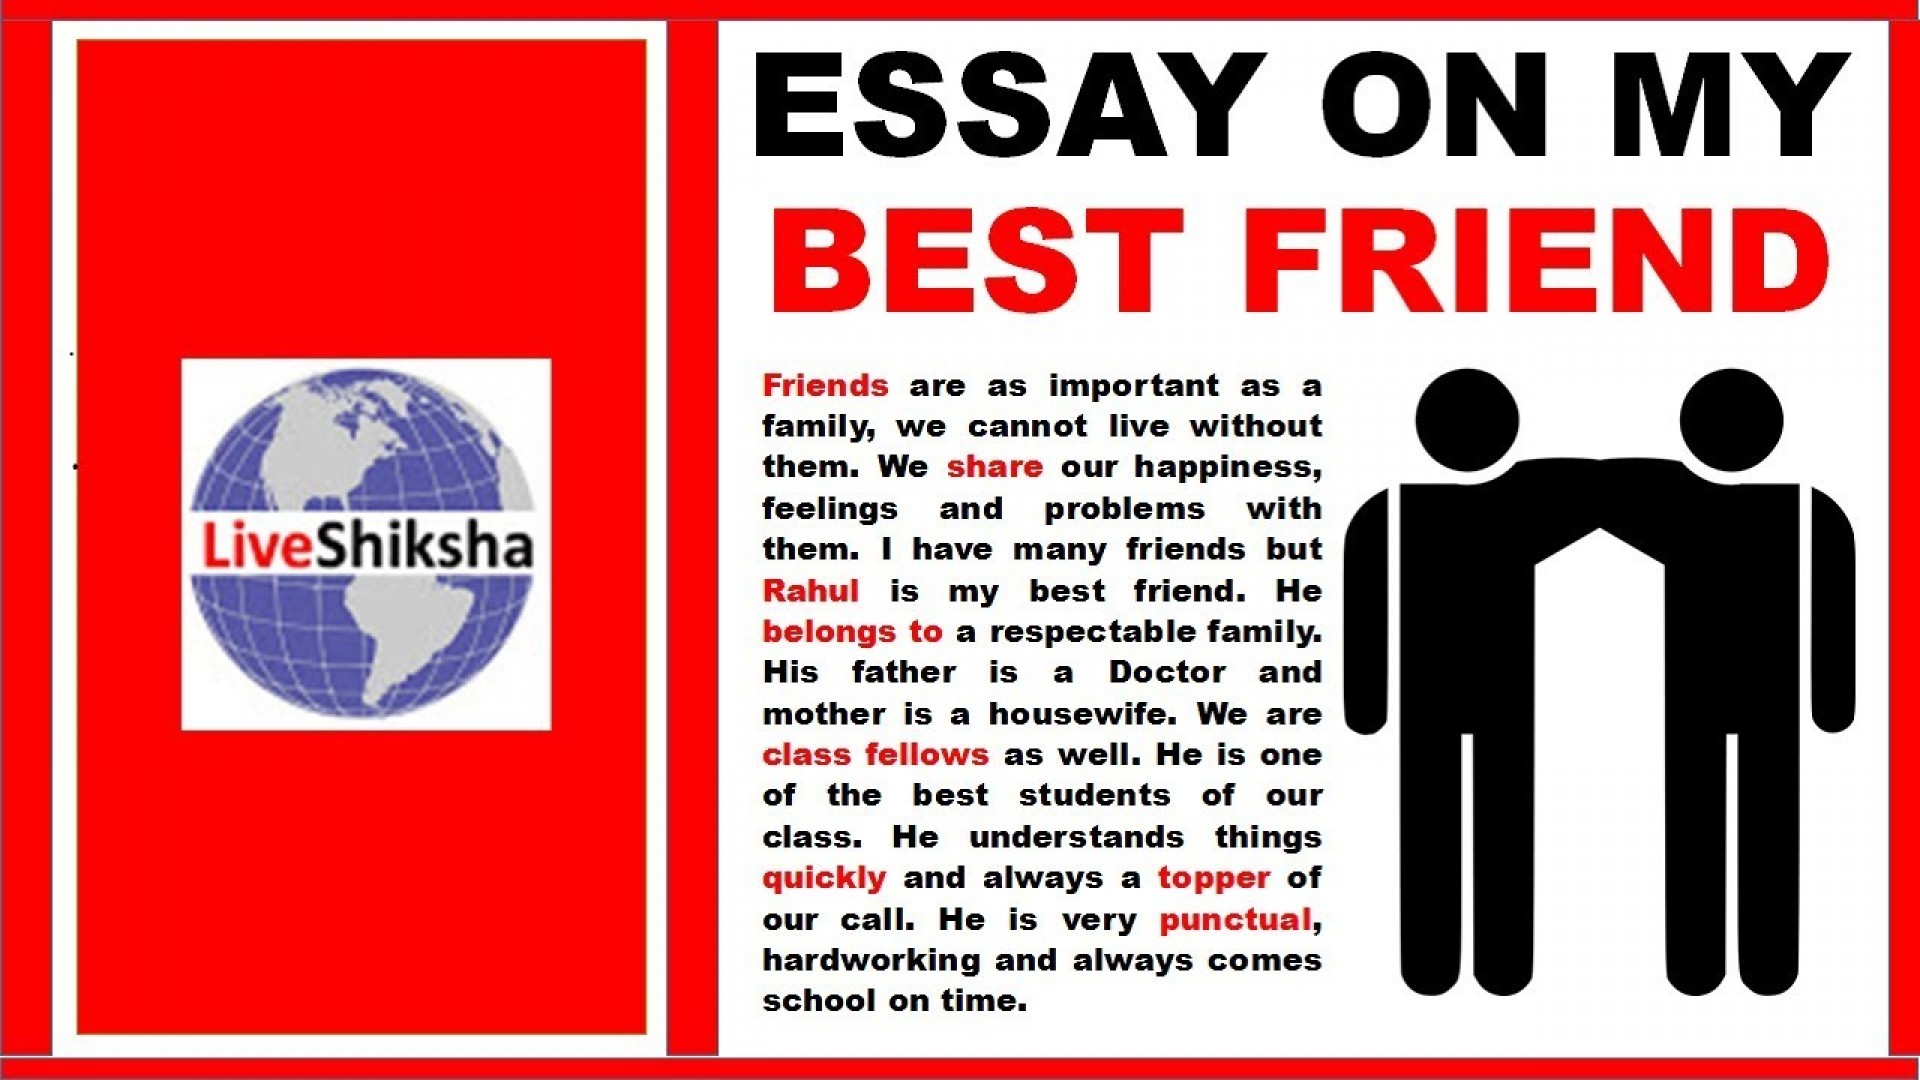 001 Best Friend Essay Example Magnificent Short In Hindi My For College Students Class 10 Urdu 1920